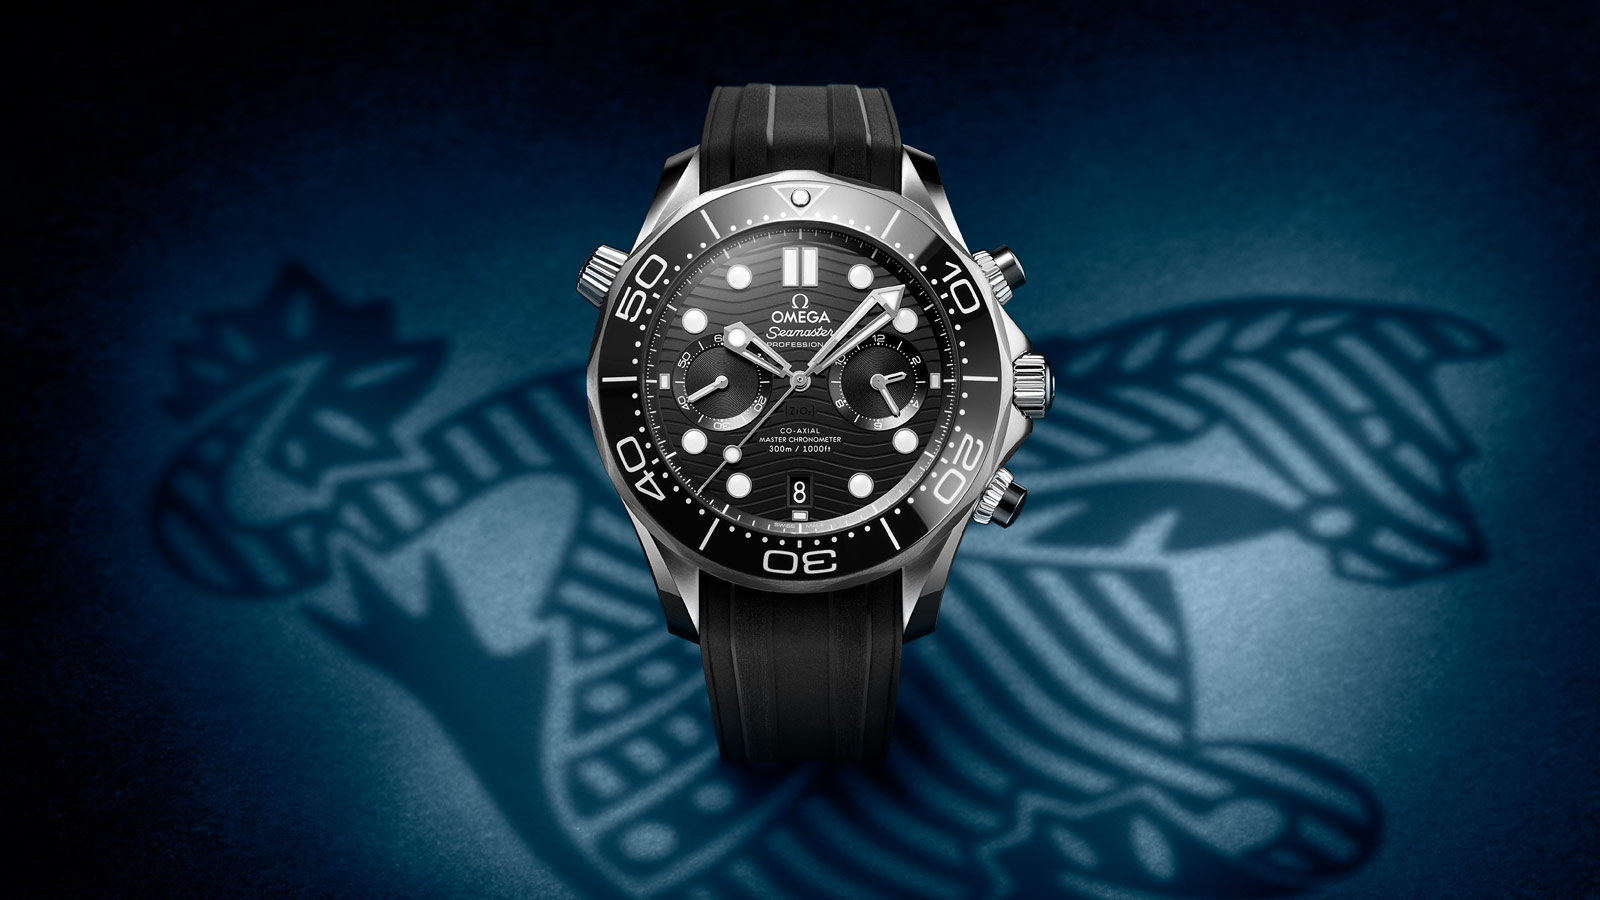 Seamaster Diver 300M Diver 300M Omega Co‑Axial Master Chronometer Chronograph 44mm Watch - 210.32.44.51.01.001